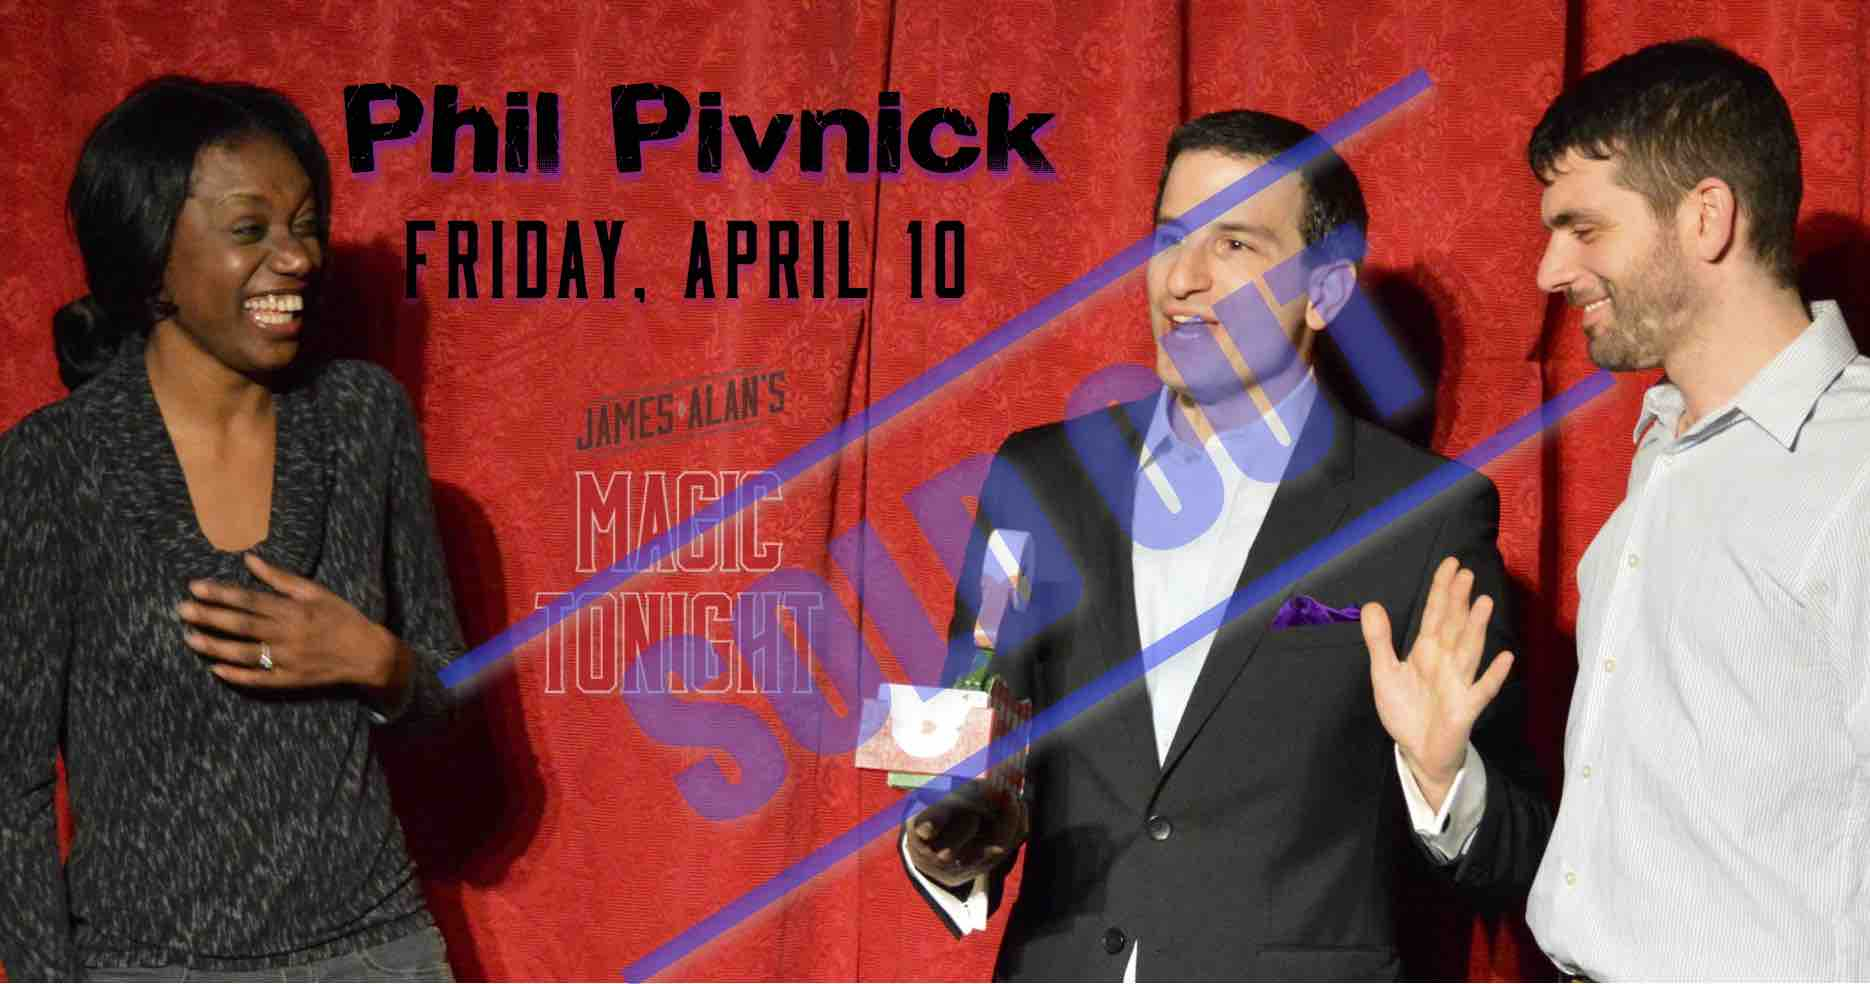 Apr 10 Phil Pivnick Sold Out